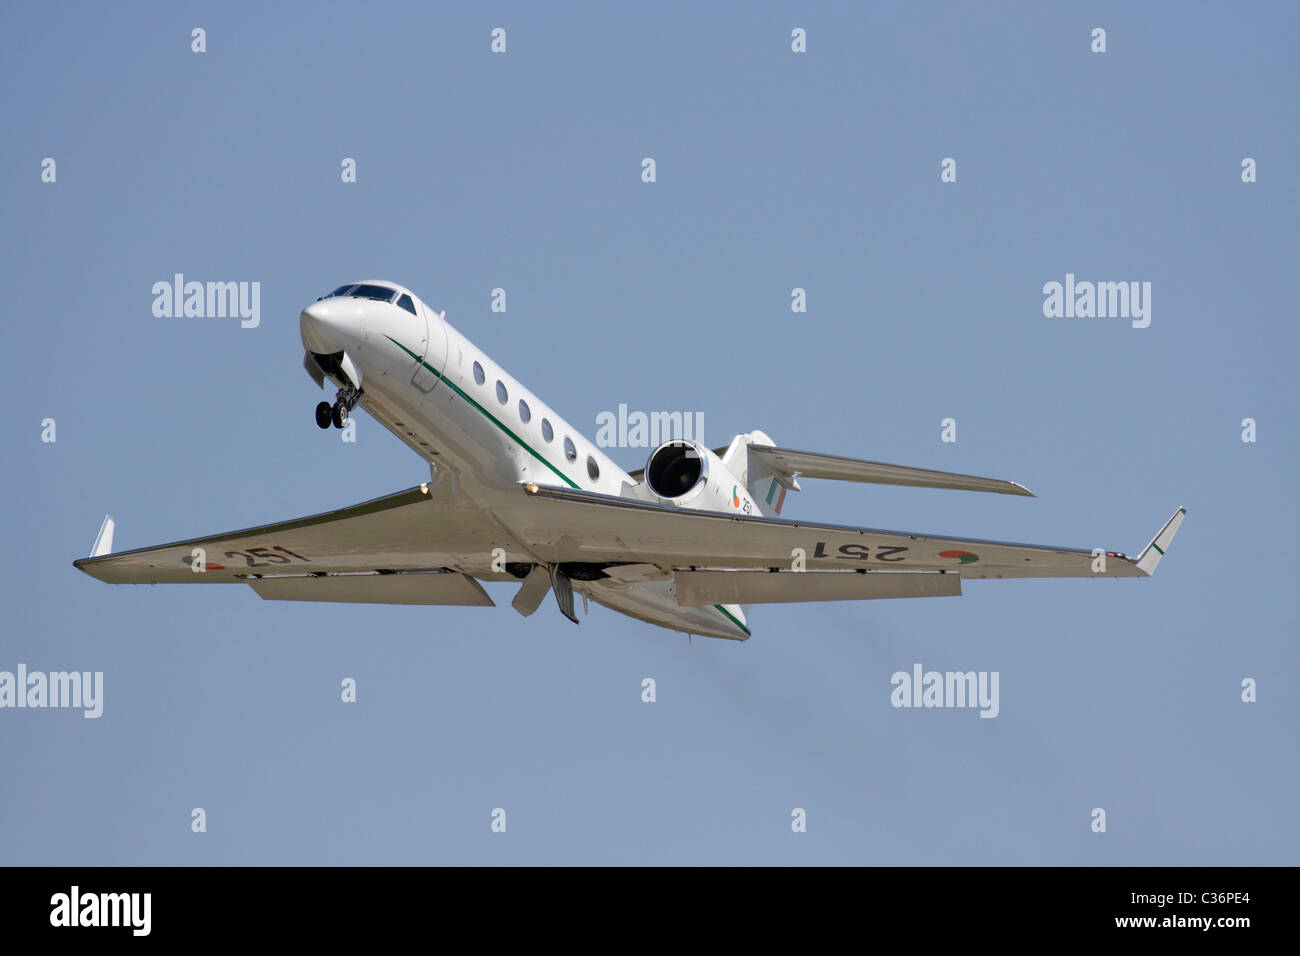 Irish Air Corps Gulfstream IV executive jet plane, used in an official VIP transport role, on takeoff - Stock Image